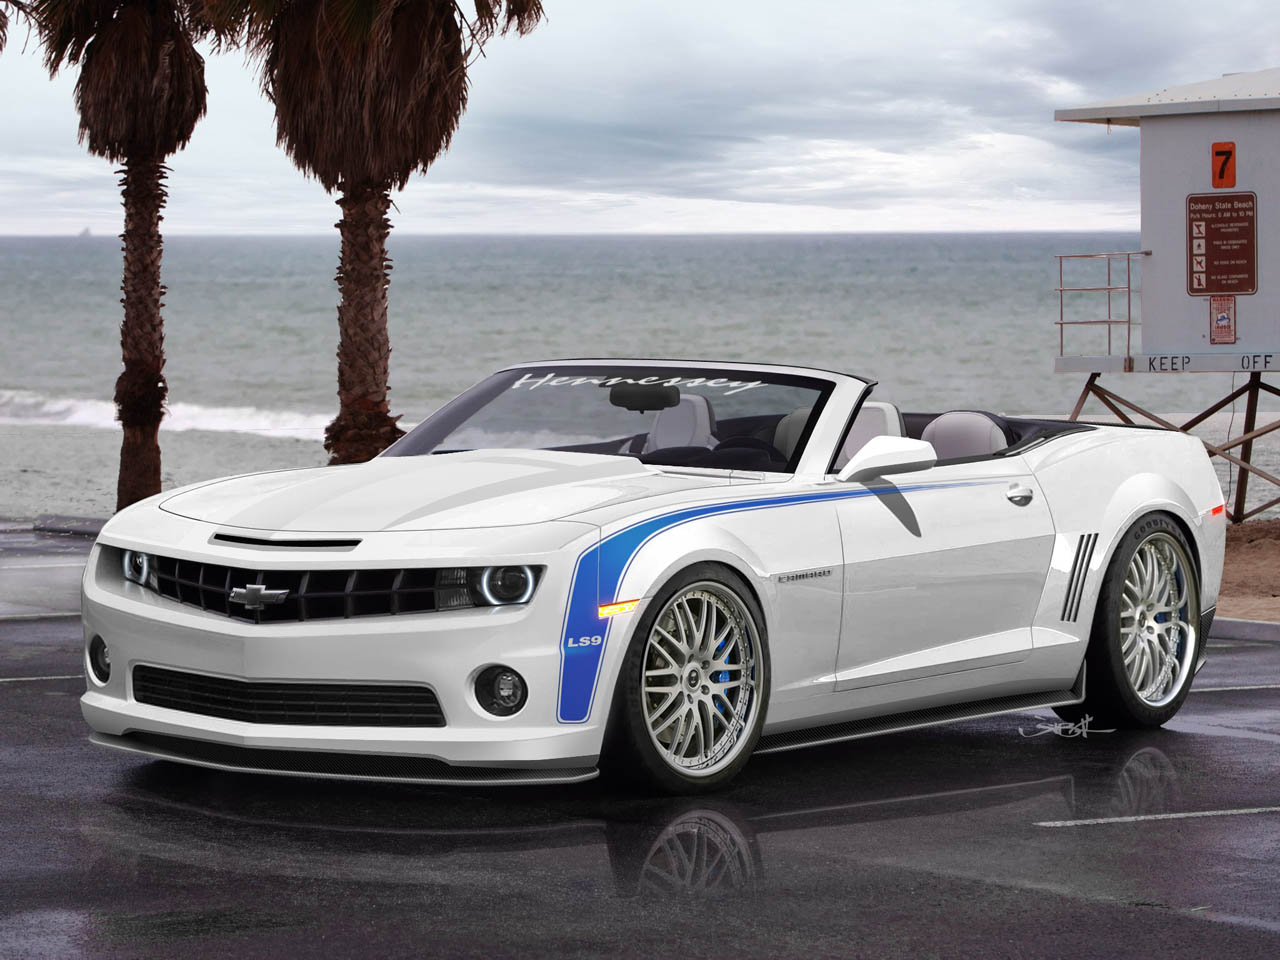 Chevrolet Hpe700 Camaro Convertible Autom 243 Viles Ultimo